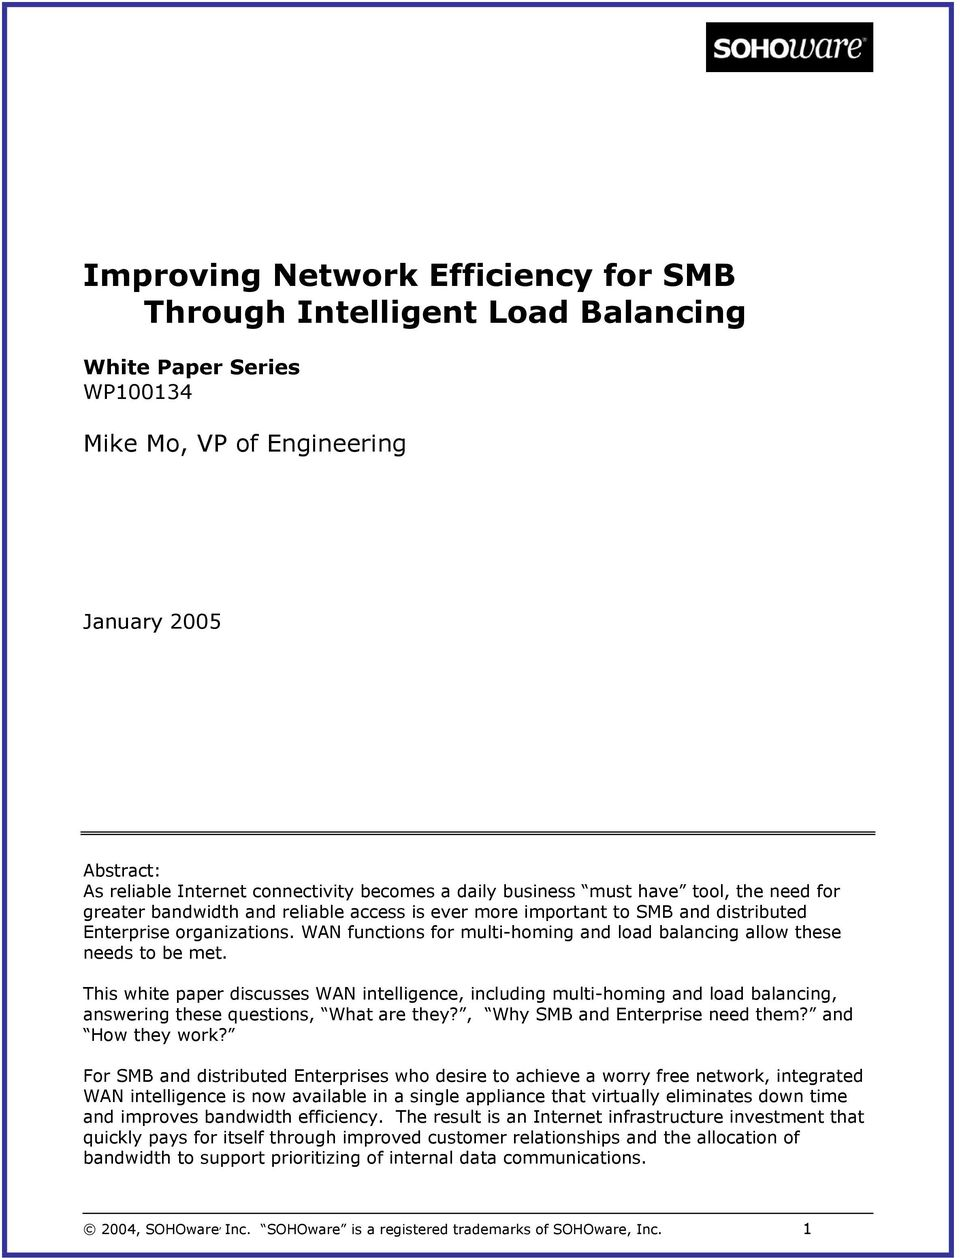 WAN functions for multi-homing and load balancing allow these needs to be met.